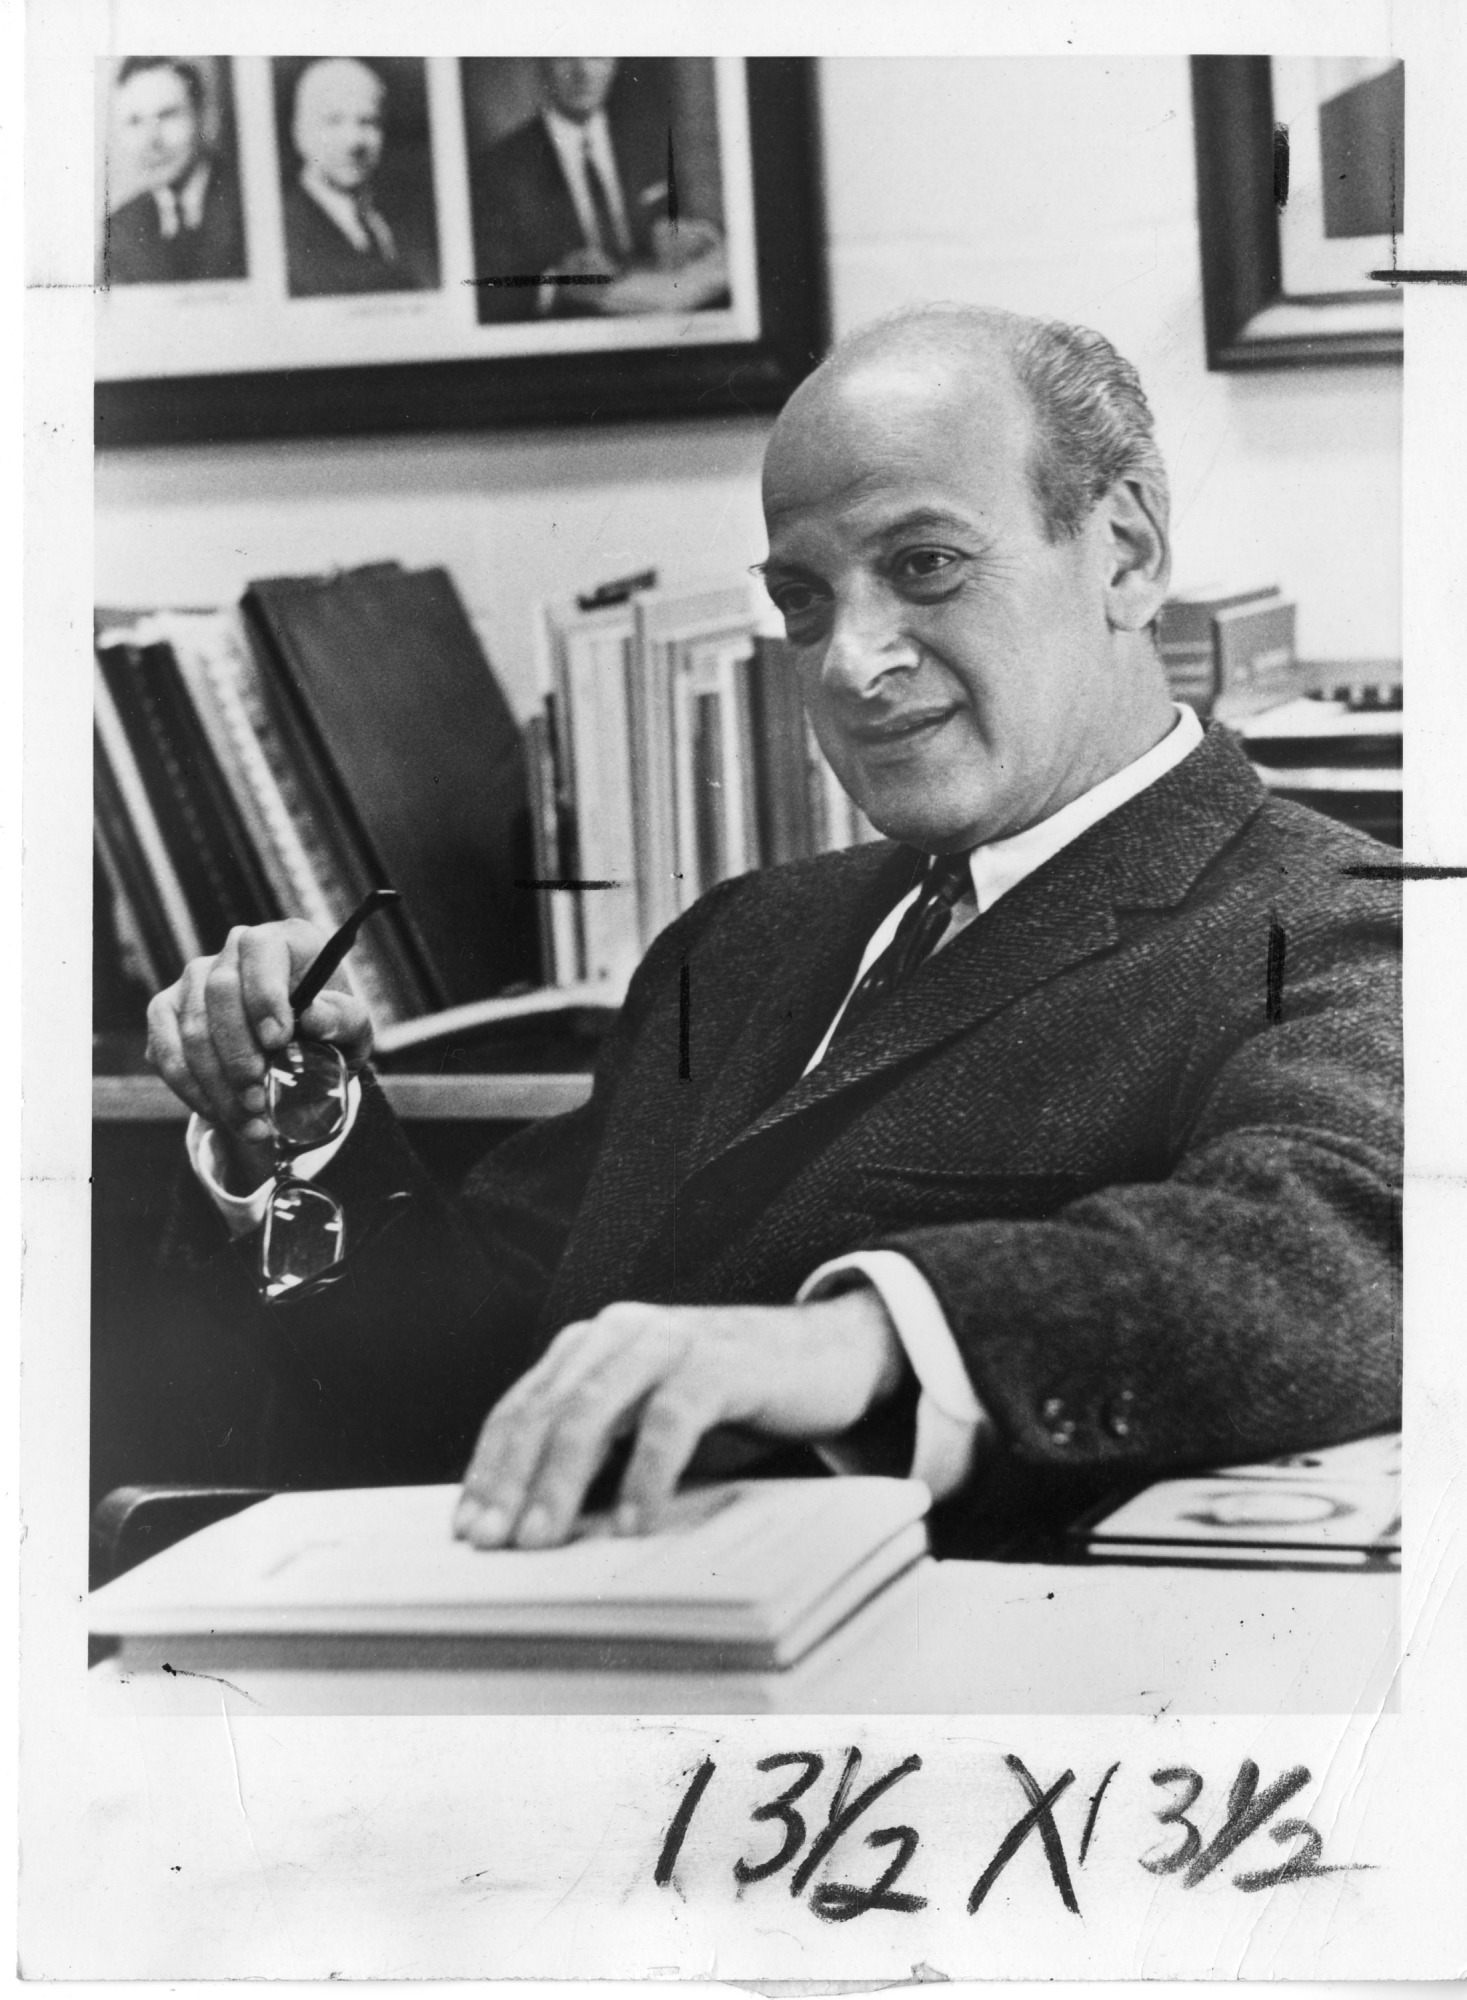 Philip Handler (1917-1981), Smithsonian Institution Archives, SIA Acc. 90-105 [SIA2008-3326].